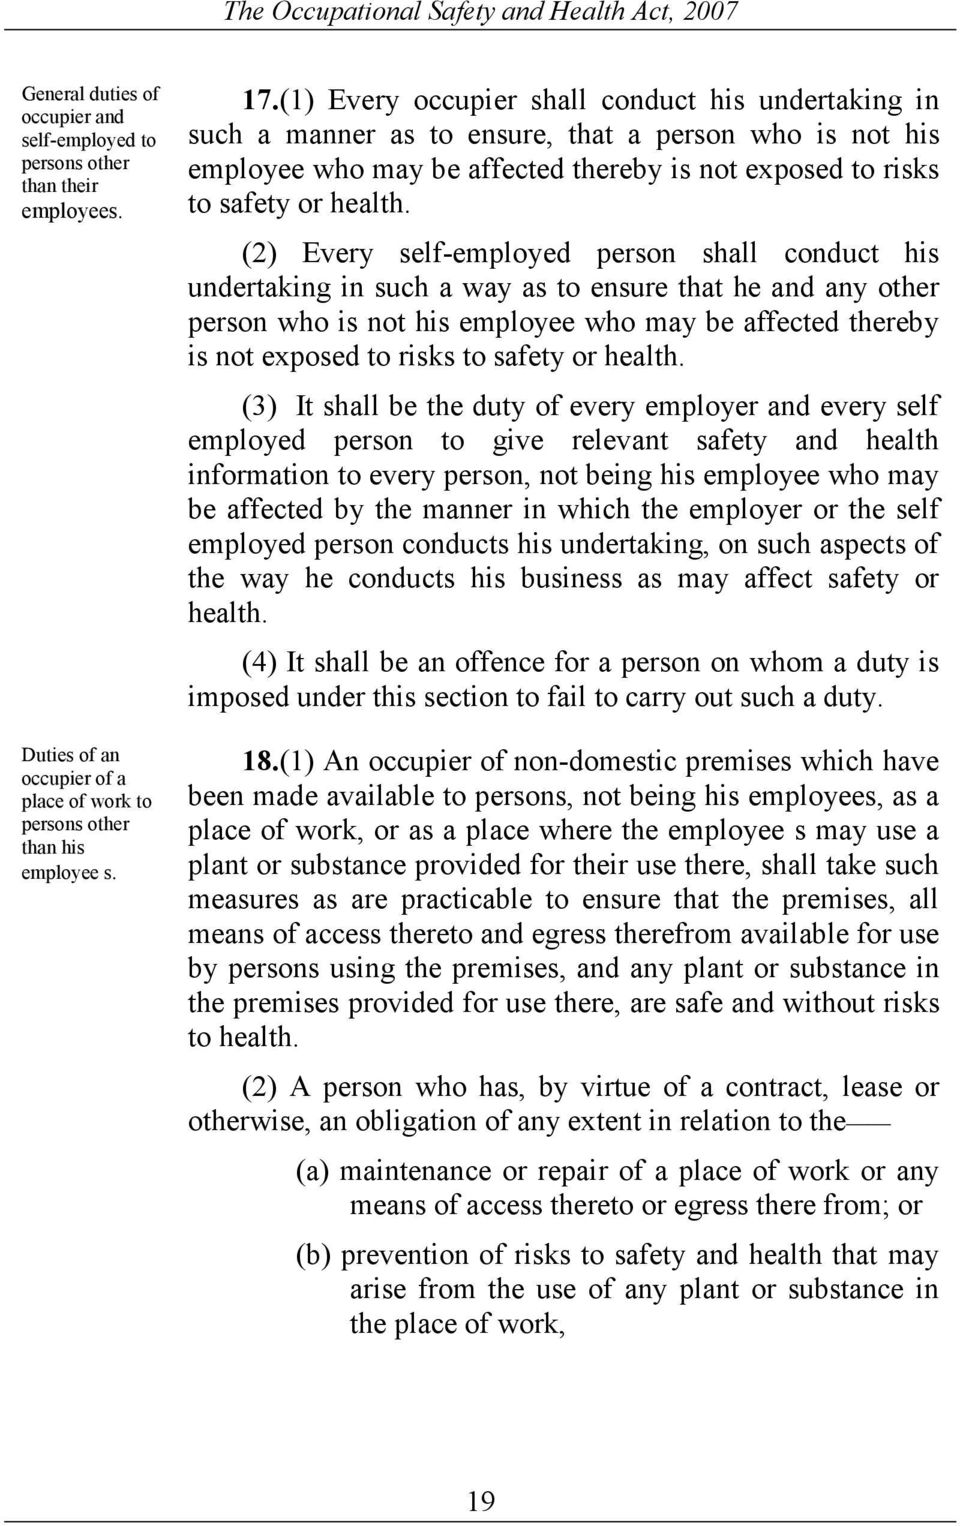 (2) Every self-employed person shall conduct his undertaking in such a way as to ensure that he and any other person who is not his employee who may be affected thereby is not exposed to risks to